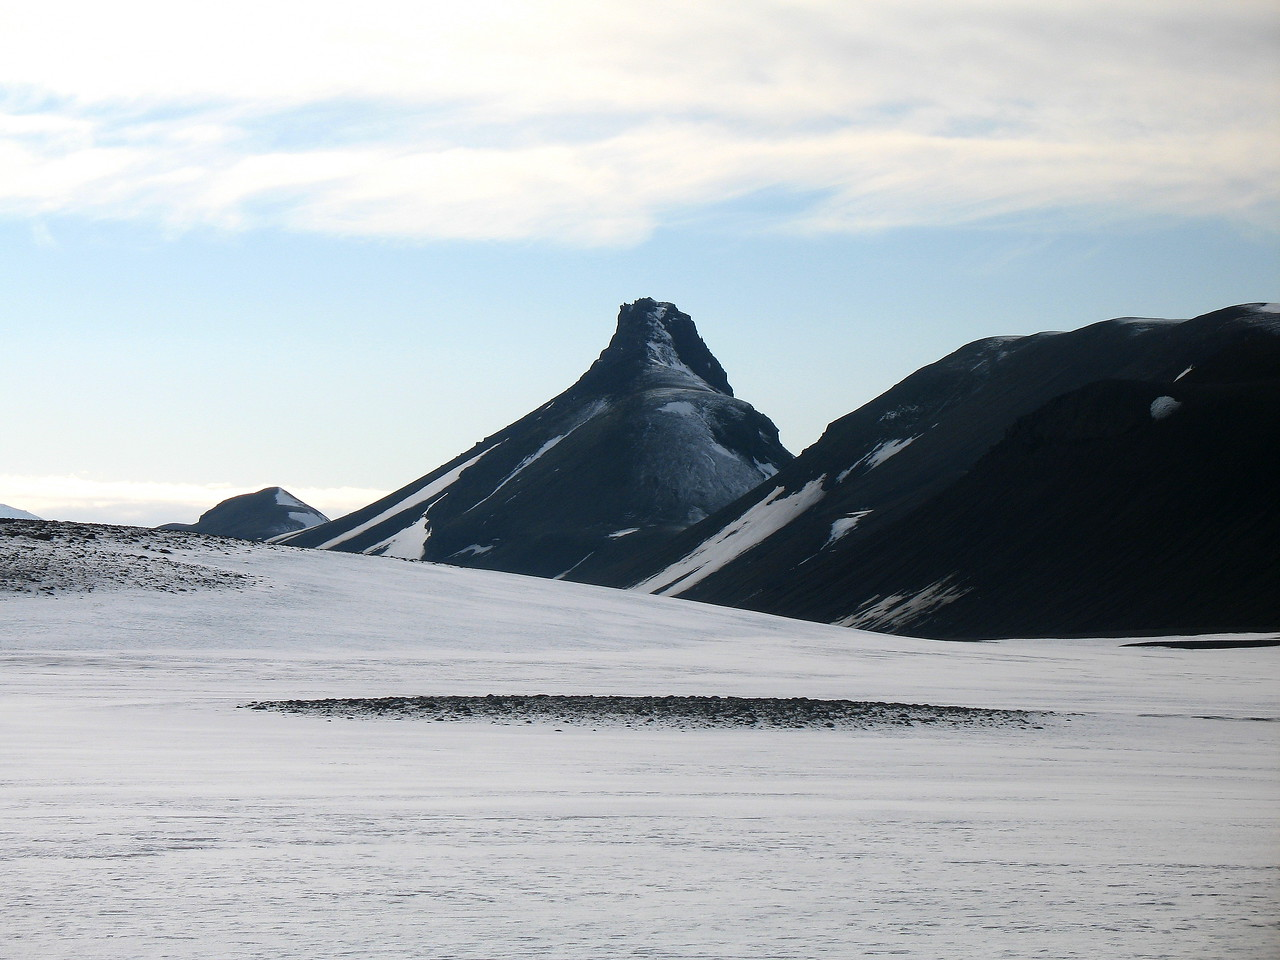 """View from the NNE, an """"end-on"""" view. This is the ascent route recommended in the book """"Icelandic Mountains, Hiking Routes to 151 Peaks"""" but we didn't fancy our chances on those icy rock outcrops near the top!"""